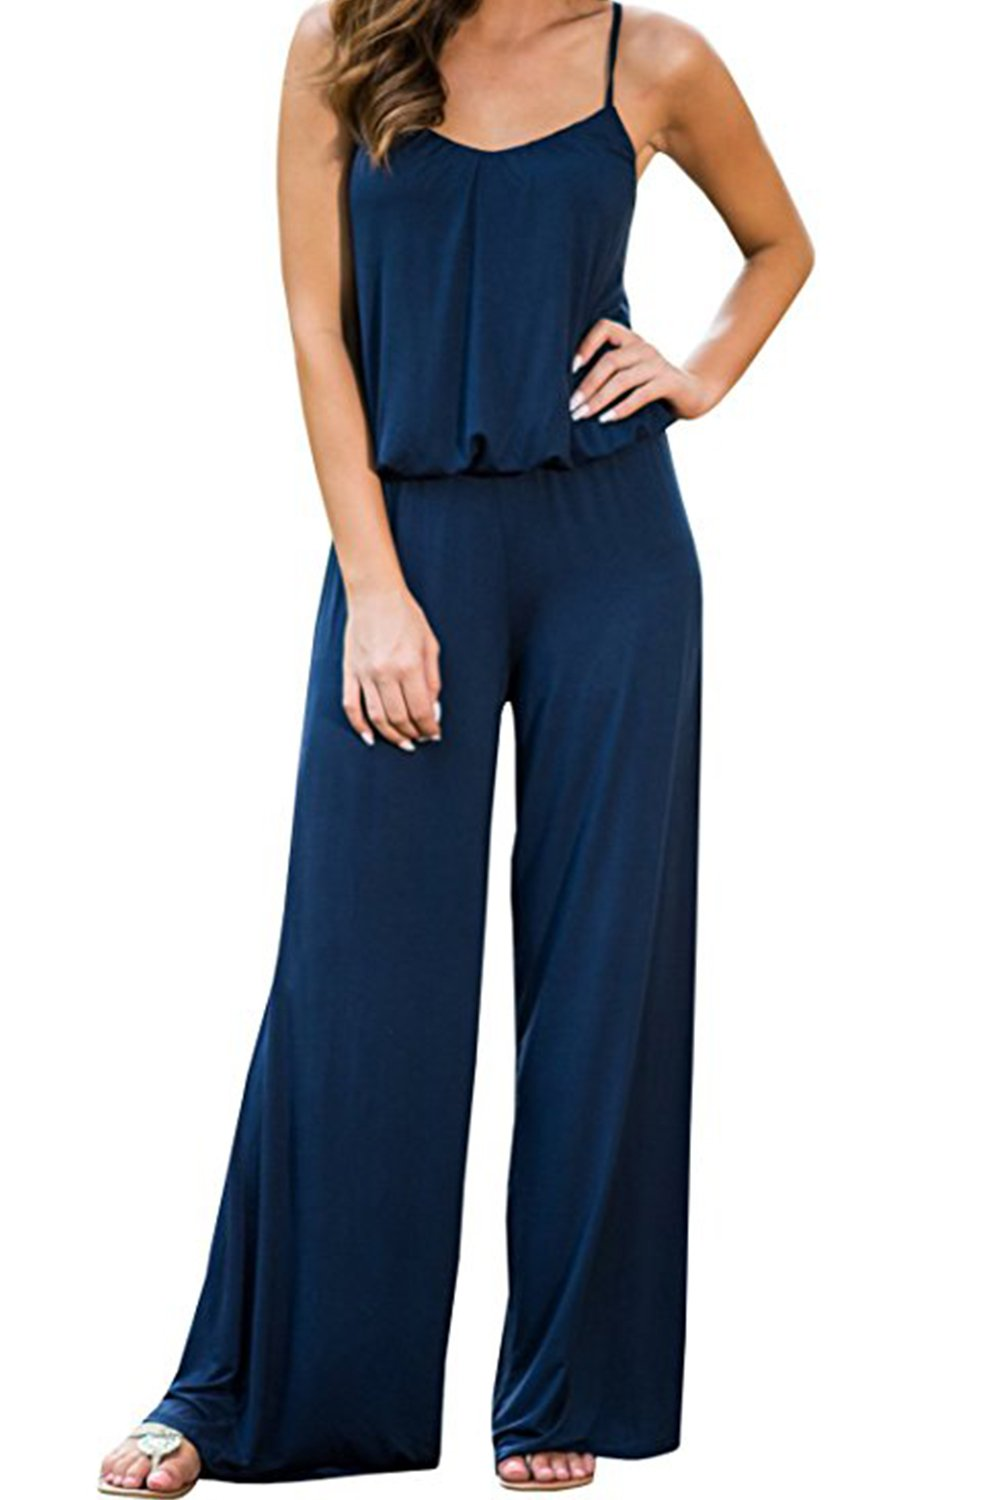 Womens Jumpsuits Wide Leg Cotton Loose Sleeveless Strap Elastic Waistband Jumpsuit Rompers